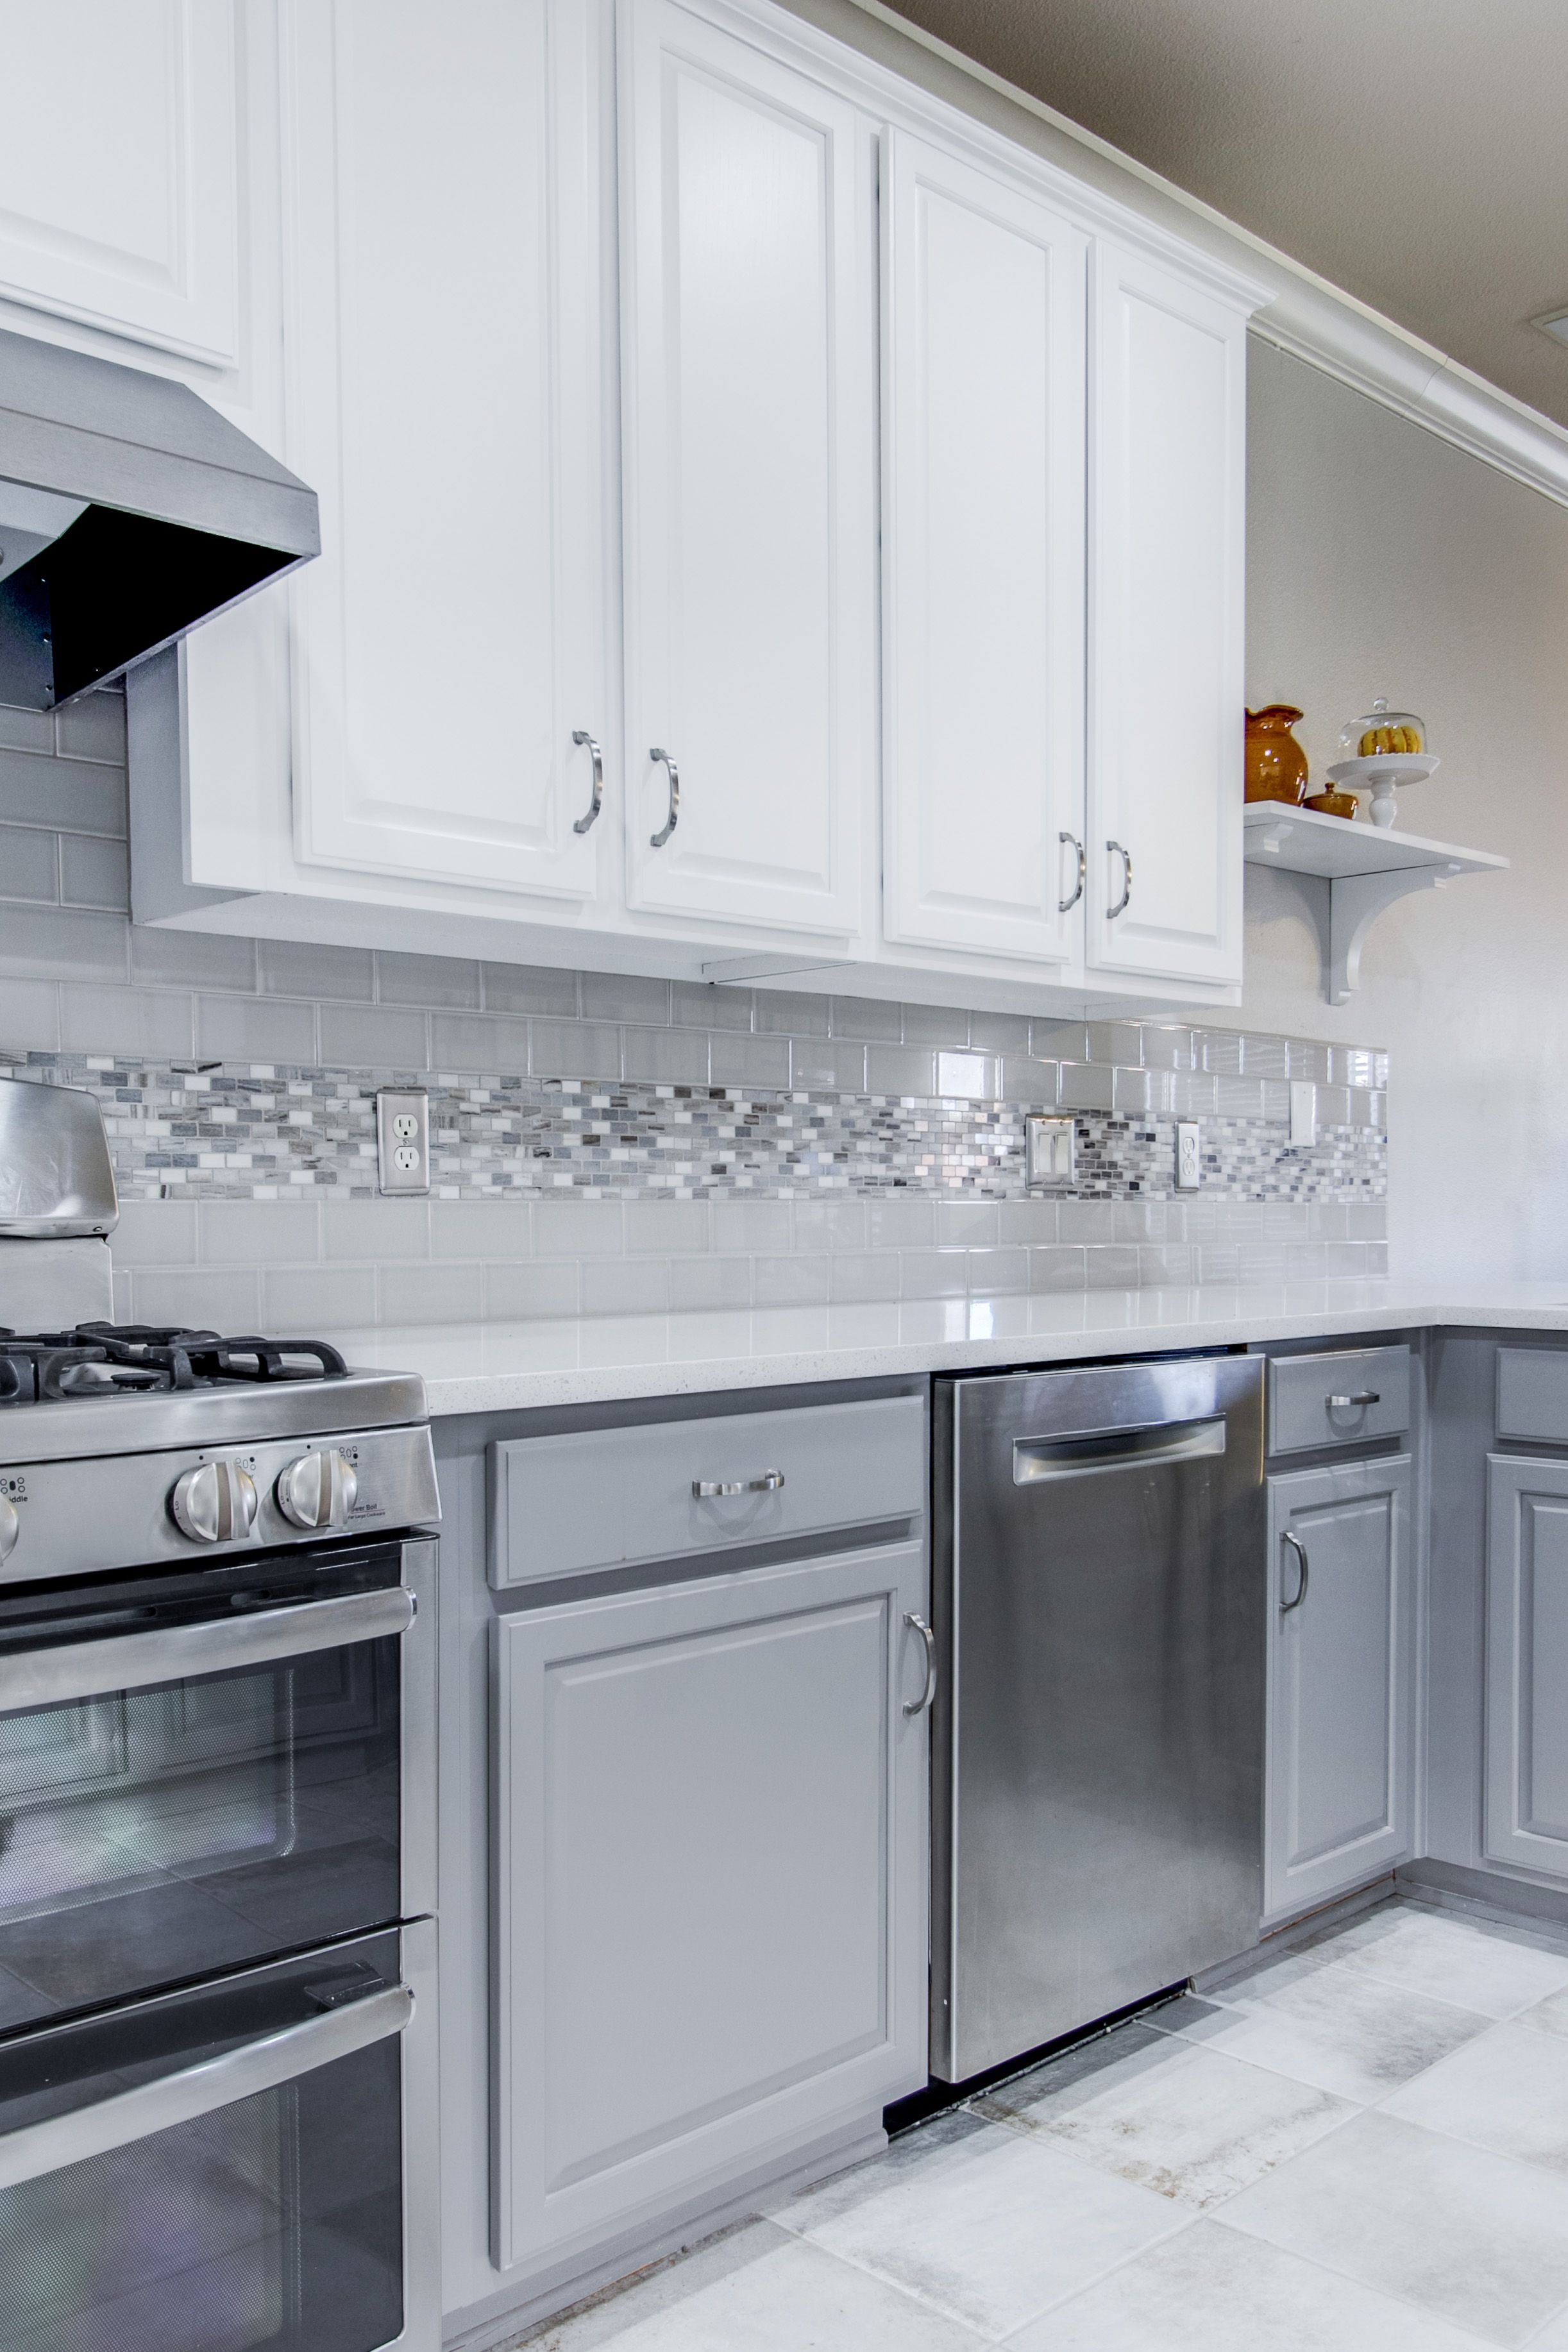 Backsplash Ceramic Tiles As An Example Provide A Finished Look To Any Type Of Kitchen They Can Kitchen Backsplash Trends Grey Kitchen Designs Kitchen Design